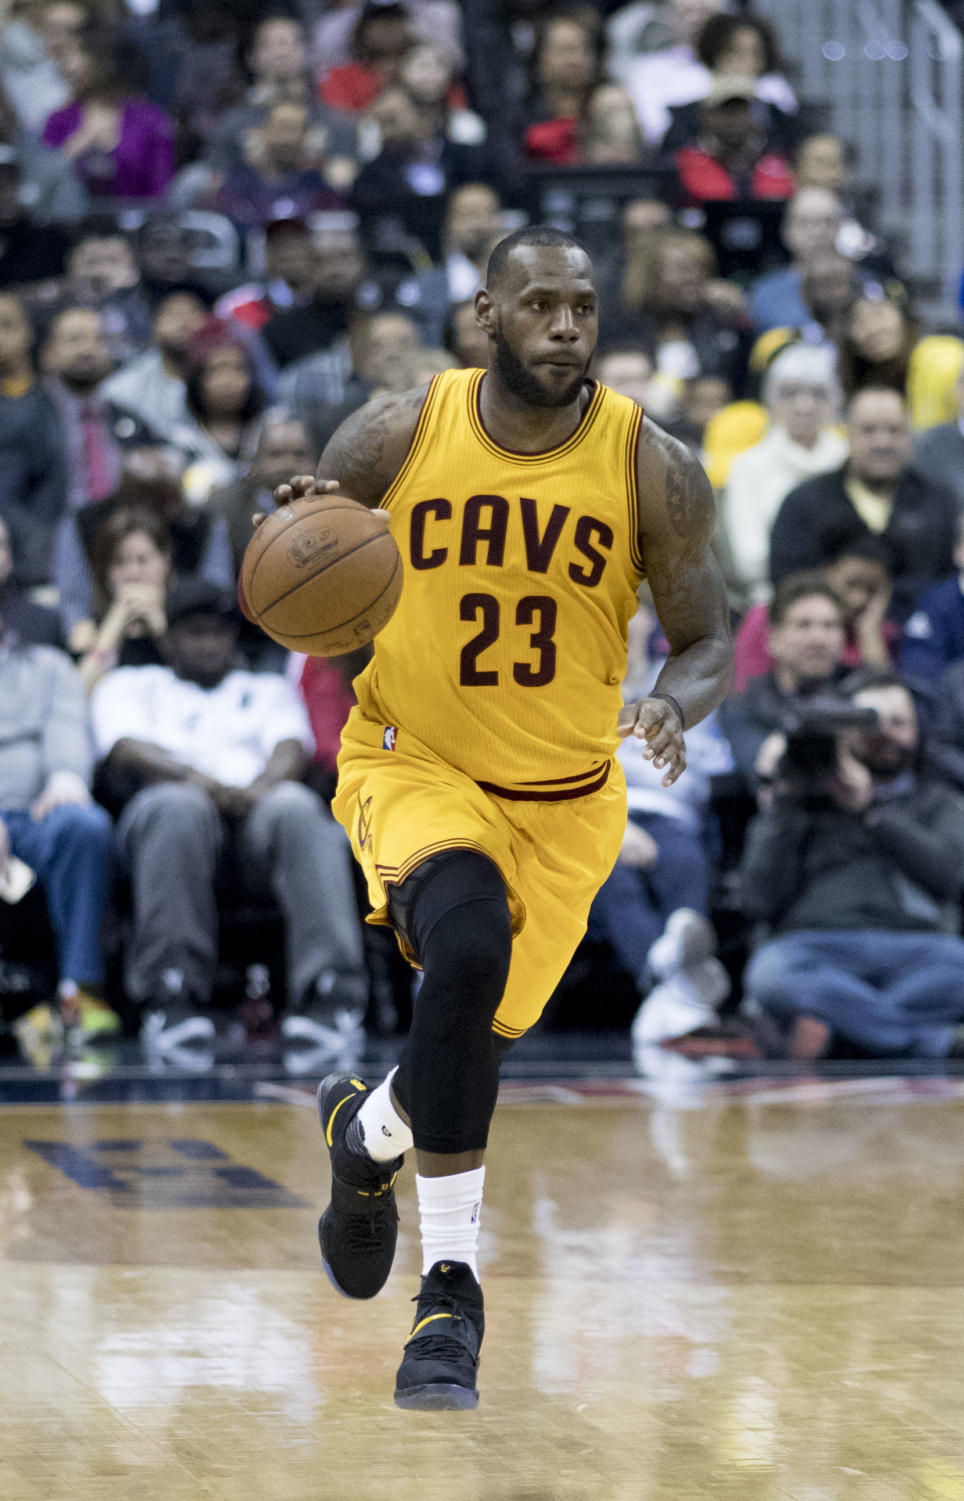 Lebron James takes the ball up the court in a crucial playoff game